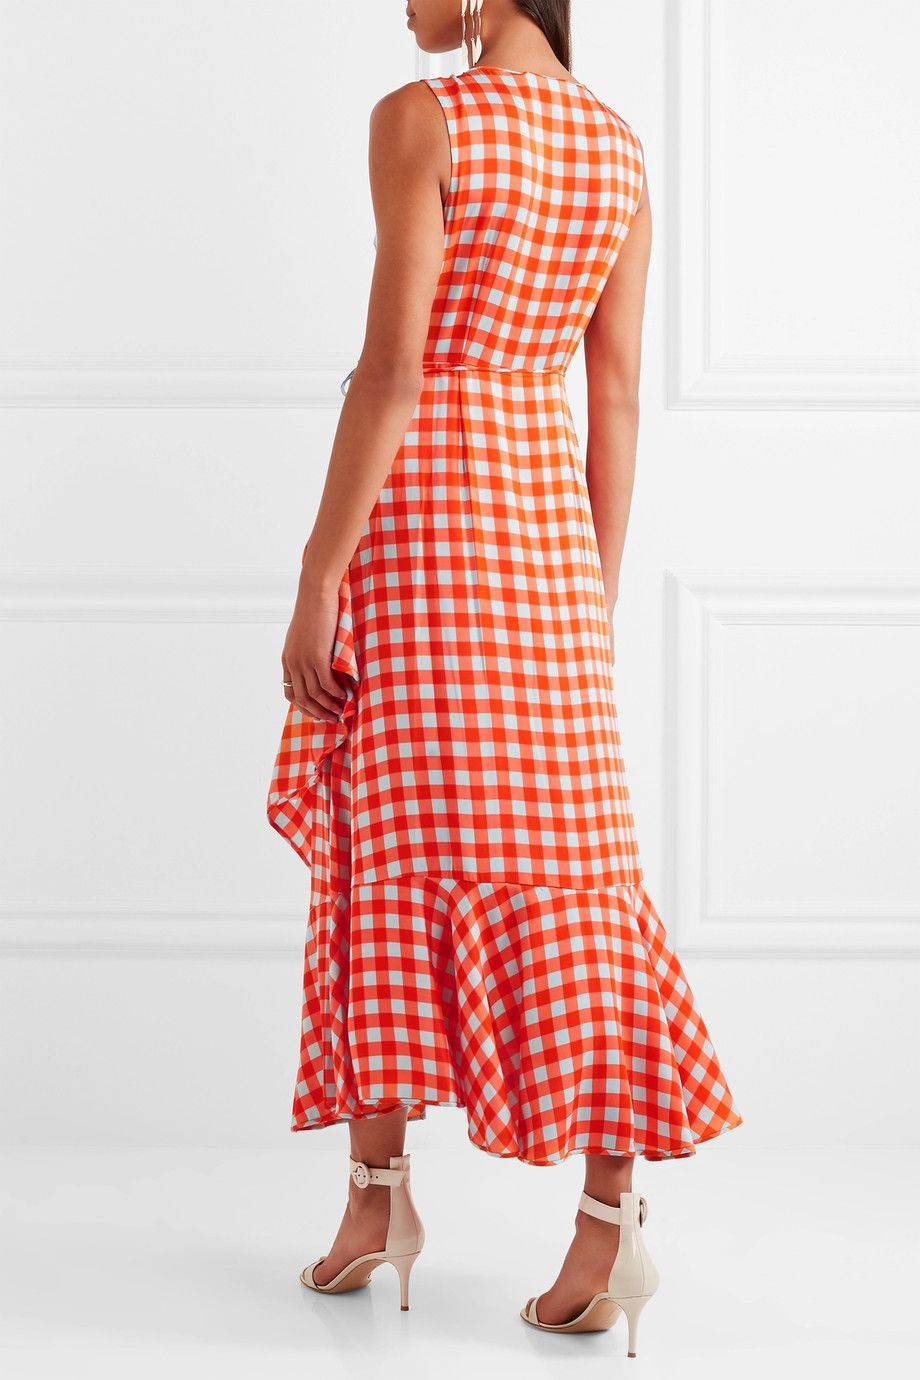 Cheap Latest Collections Visit For Sale Ruffled Gingham Stretch-silk Wrap-effect Midi Dress - Red Diane Von Fürstenberg Fashionable For Sale Cheap Sale Limited Edition UBB0Gg1z